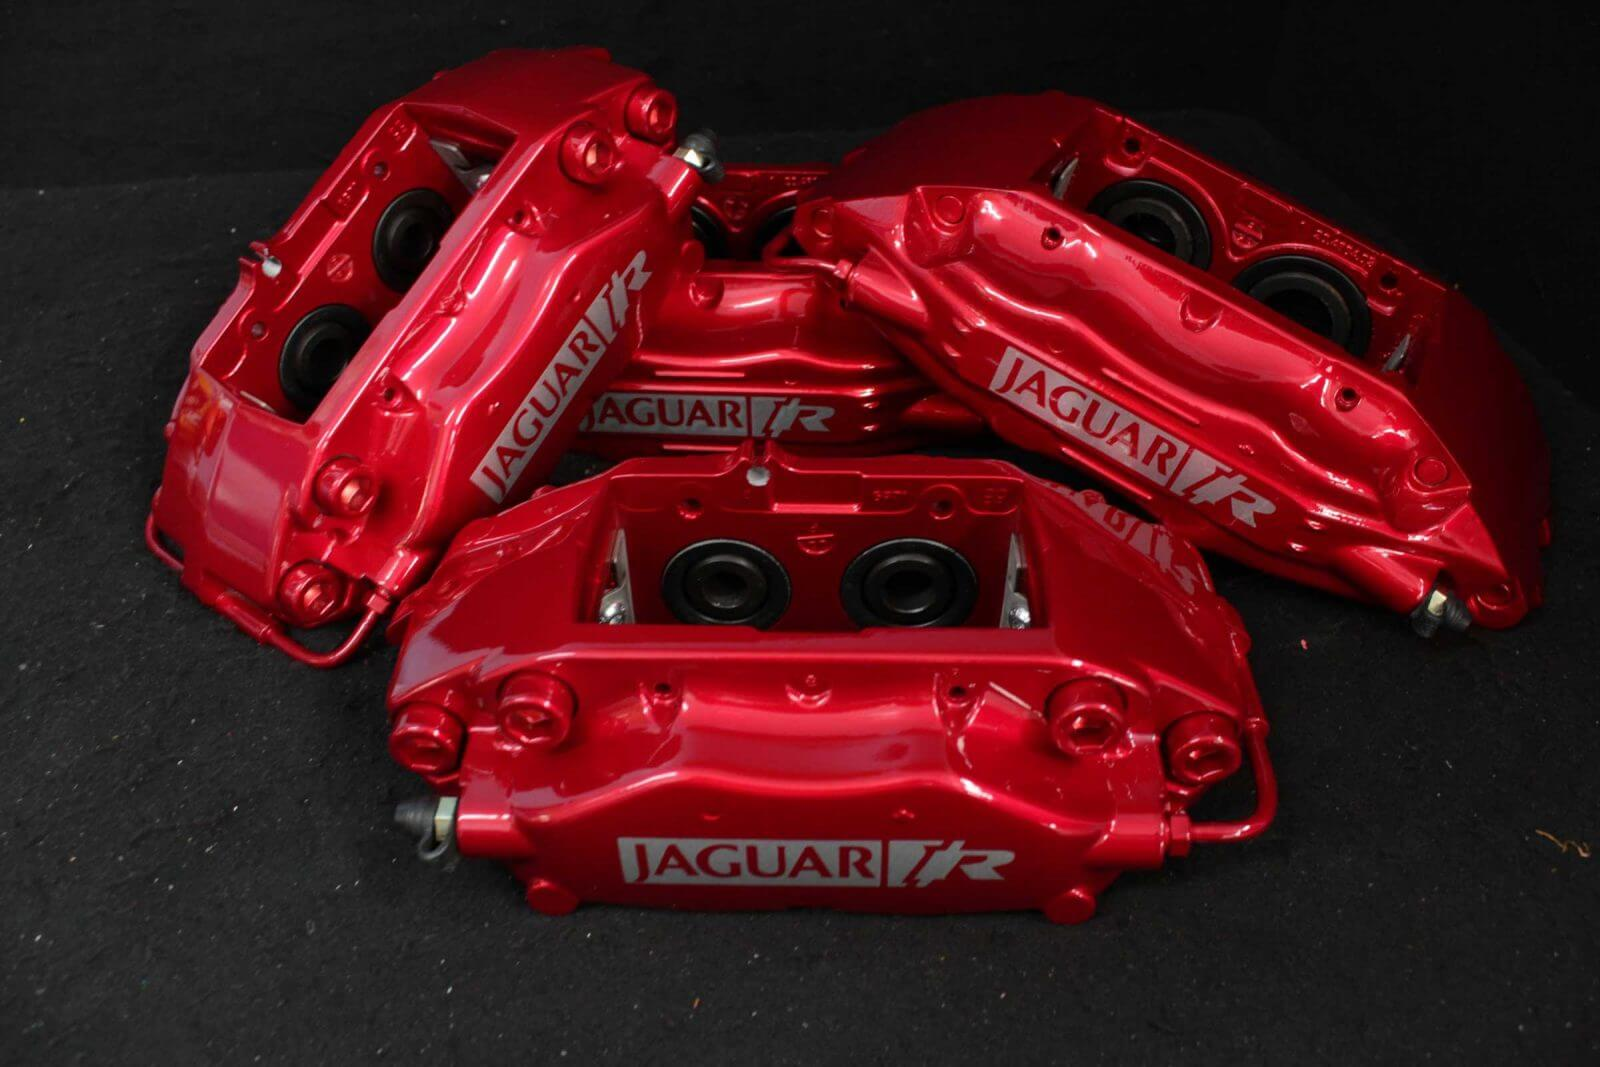 Jaguar XKR red brake calipers red